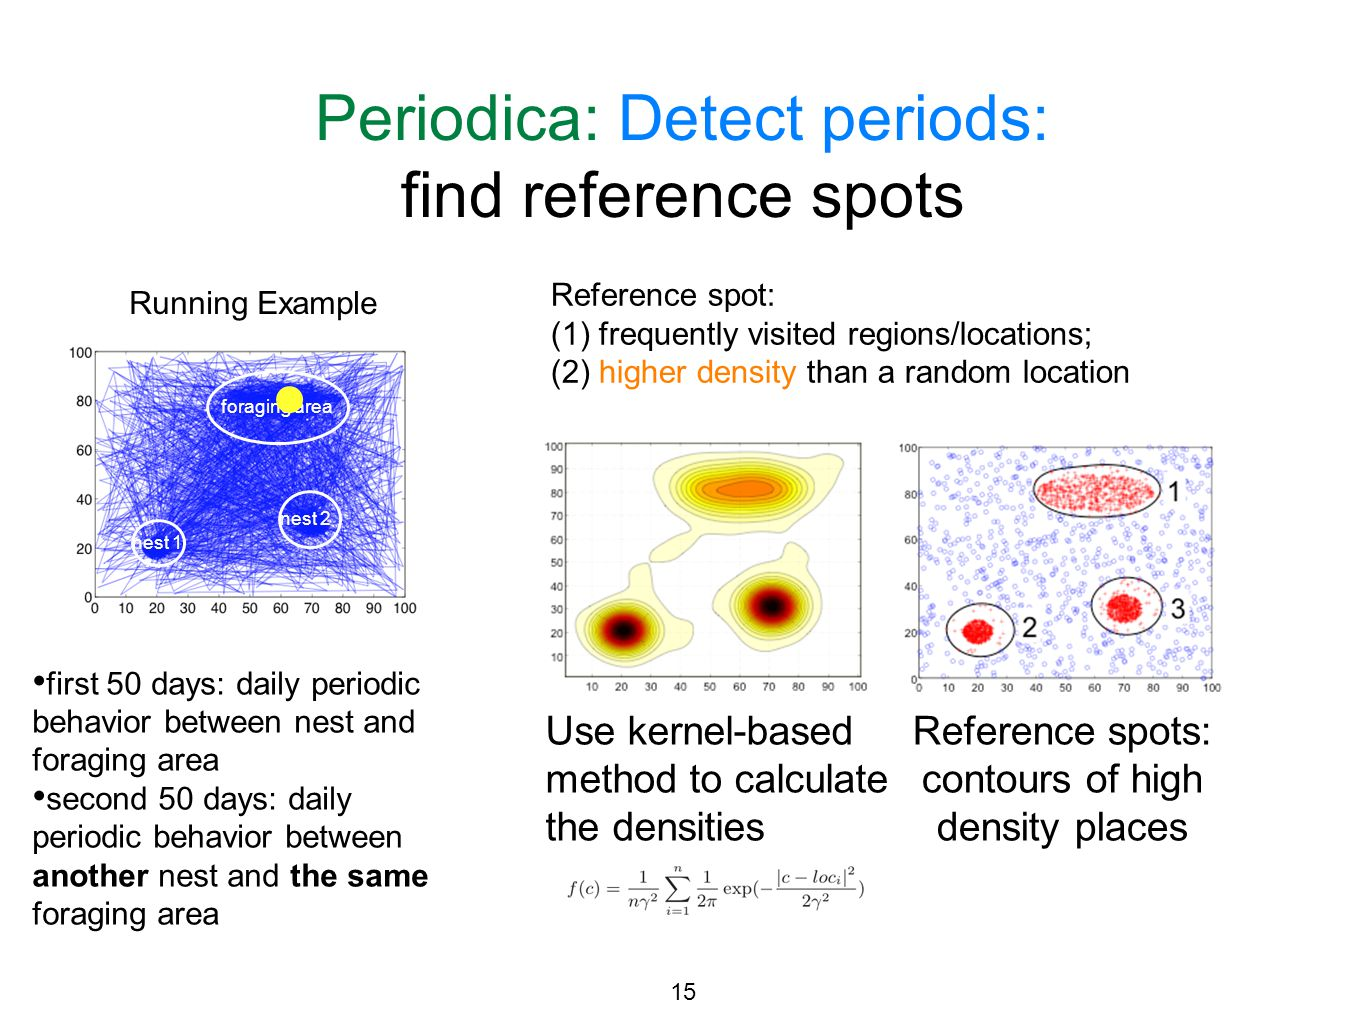 Periodica: Detect periods: find reference spots first 50 days: daily periodic behavior between nest and foraging area second 50 days: daily periodic b